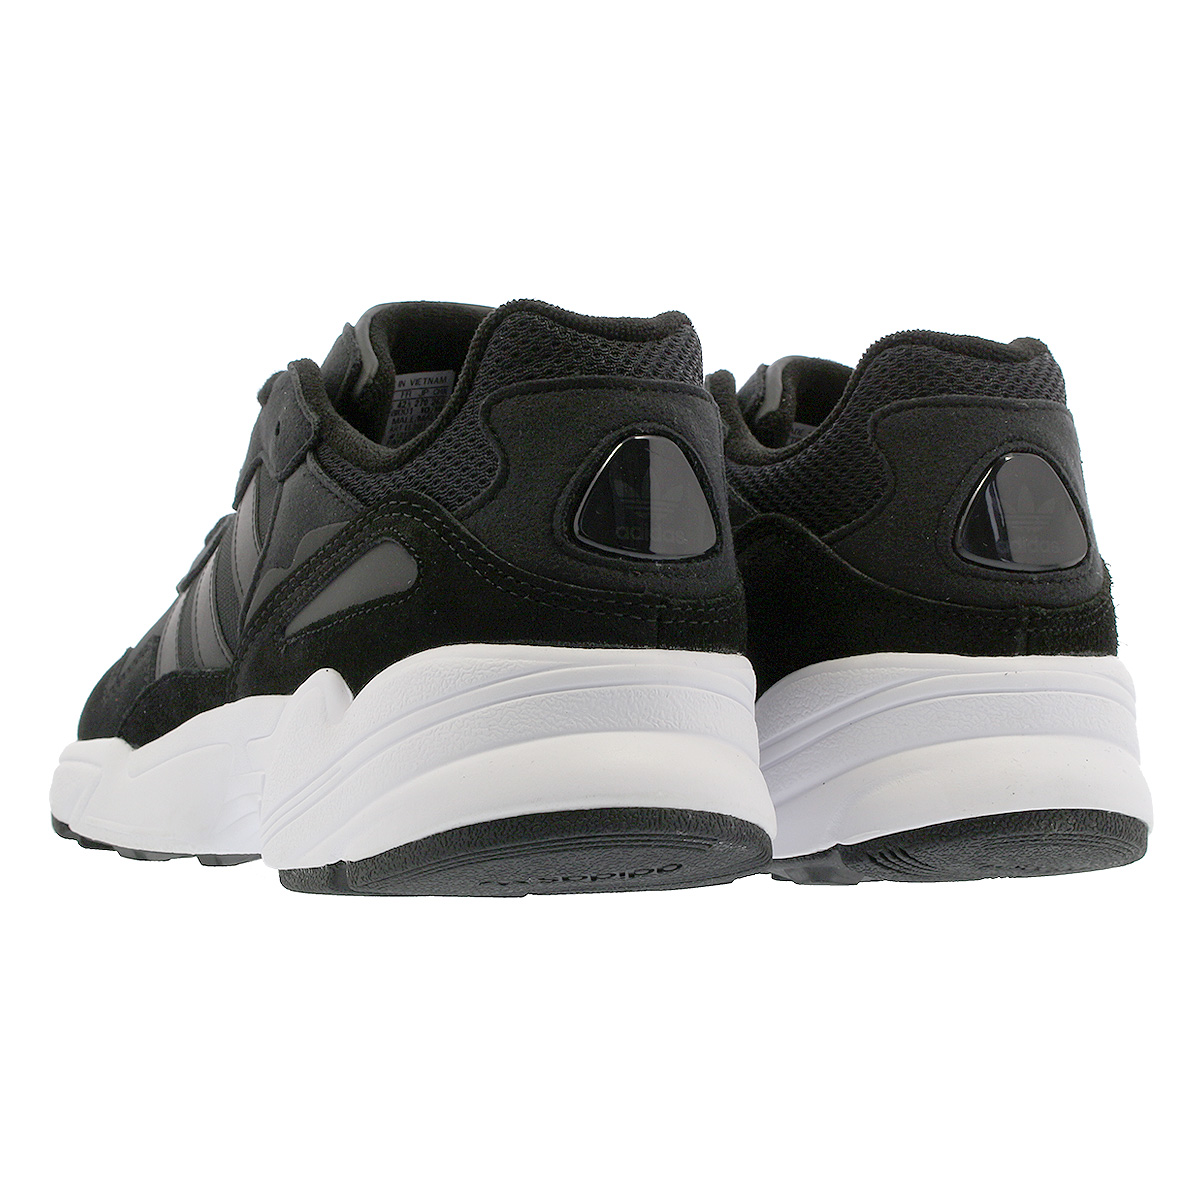 19f6c305340 adidas YUNG-96 Adidas young people 96 CORE BLACK CORE BLACK CRYSTAL WHITE  ee3681